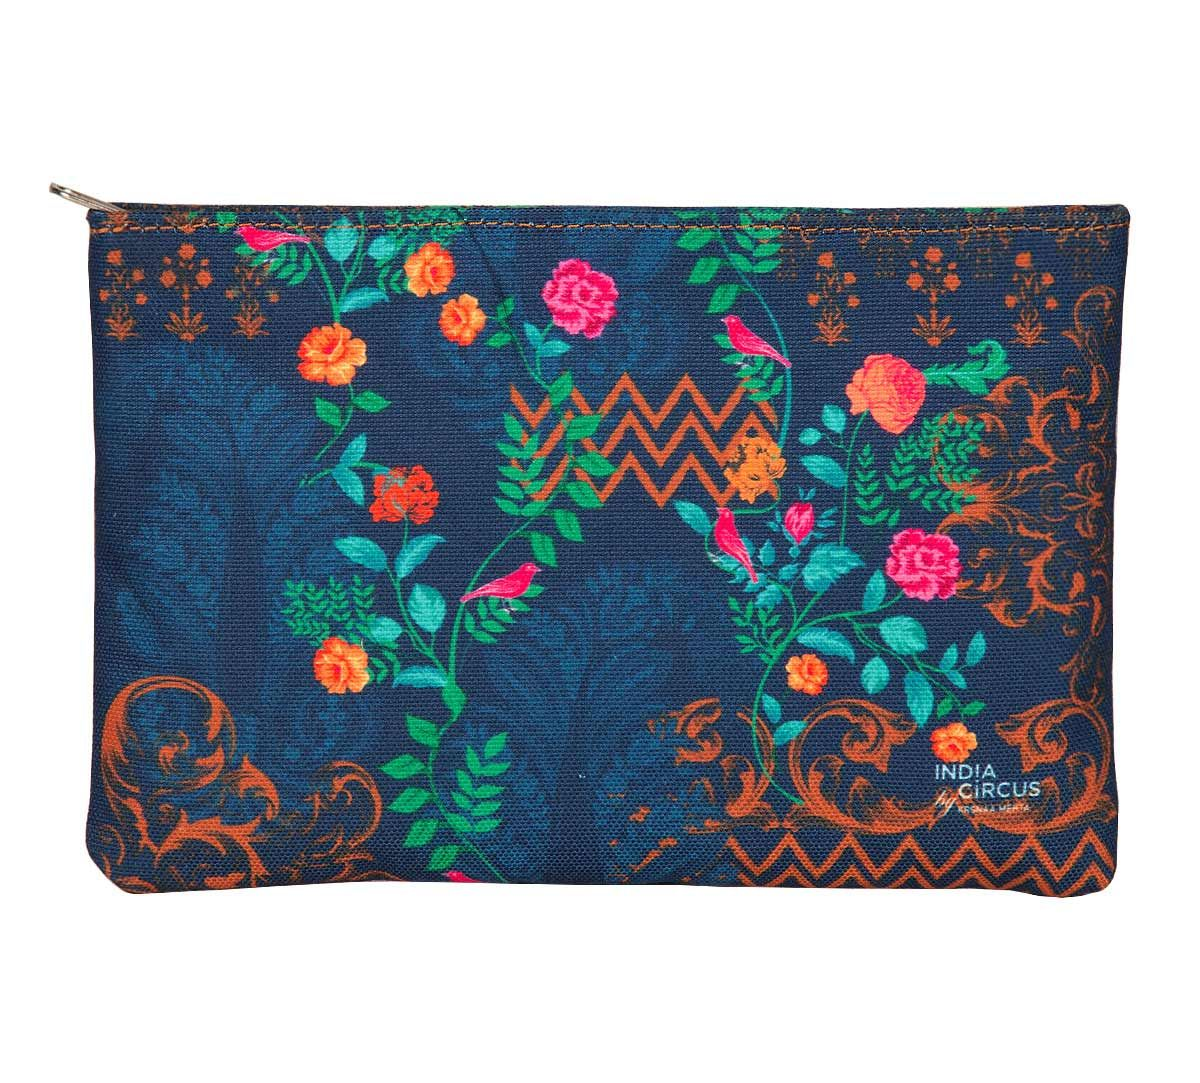 India Circus Mysterious Cage Utility Pouch